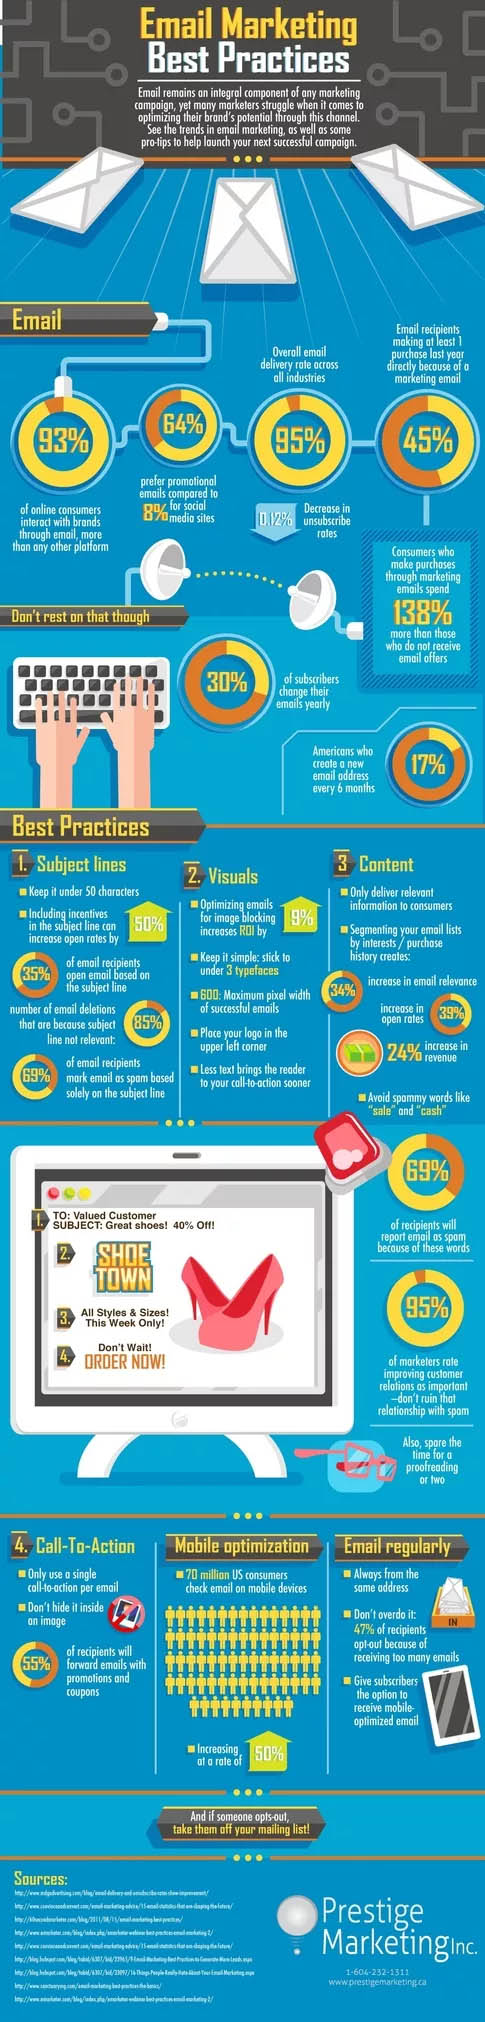 email-marketing-best-practices-infographic